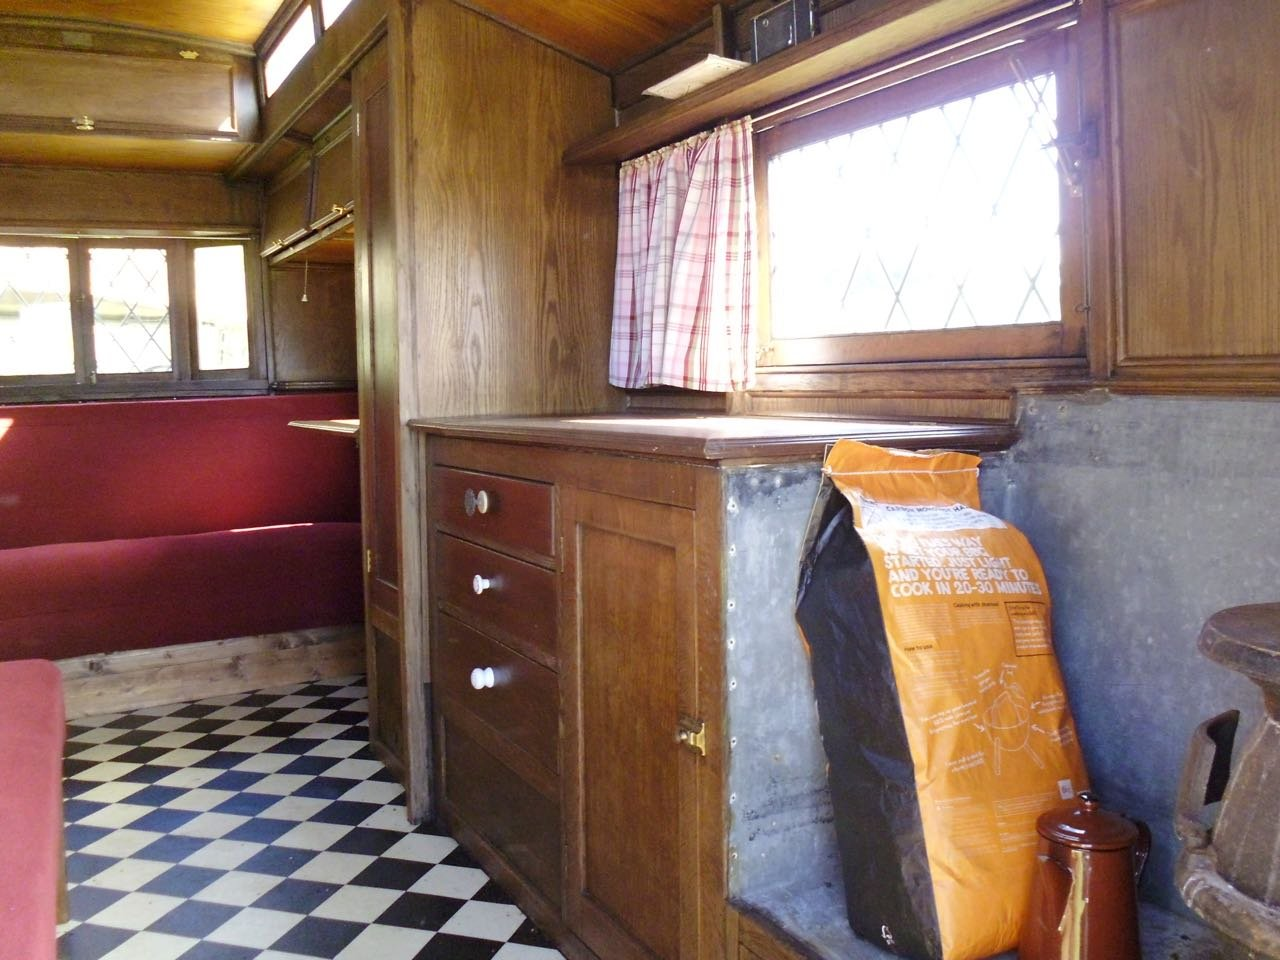 Eccles Vintage touring caravan manufactured 1920 For Sale (picture 6 of 6)